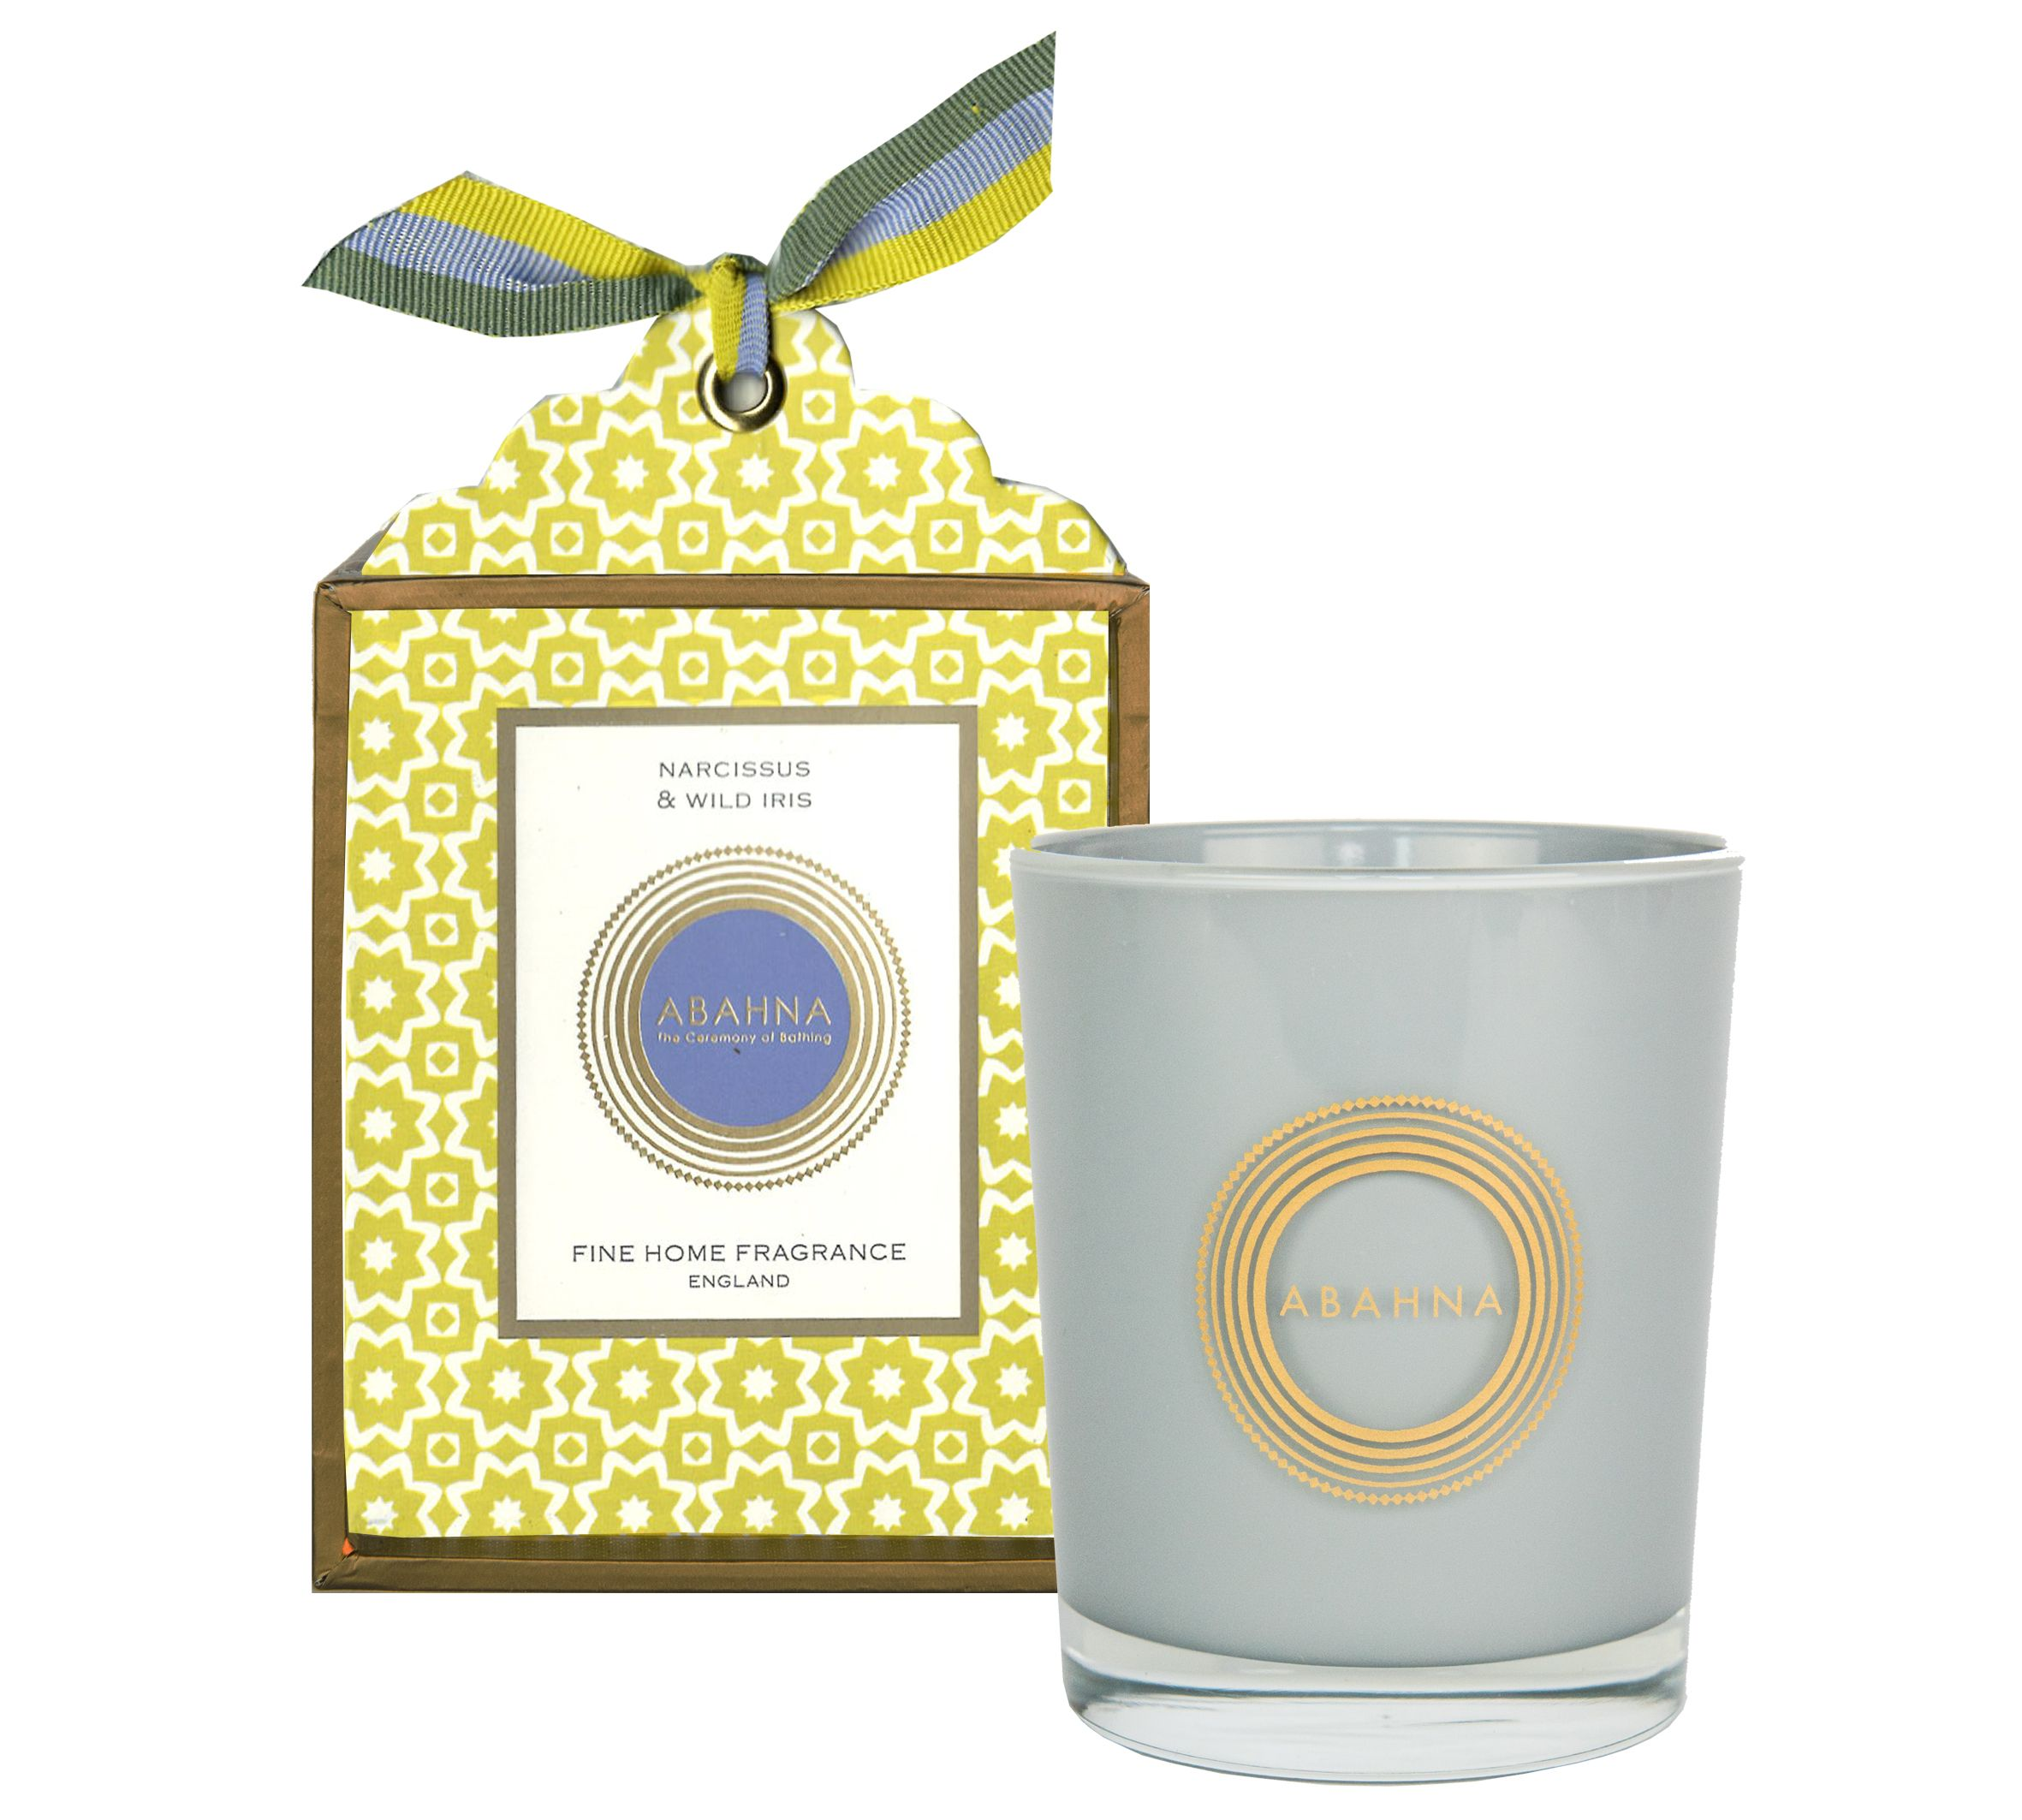 Image of Abahna Narcissus & Wild Iris Scented Candle Boxed 180g